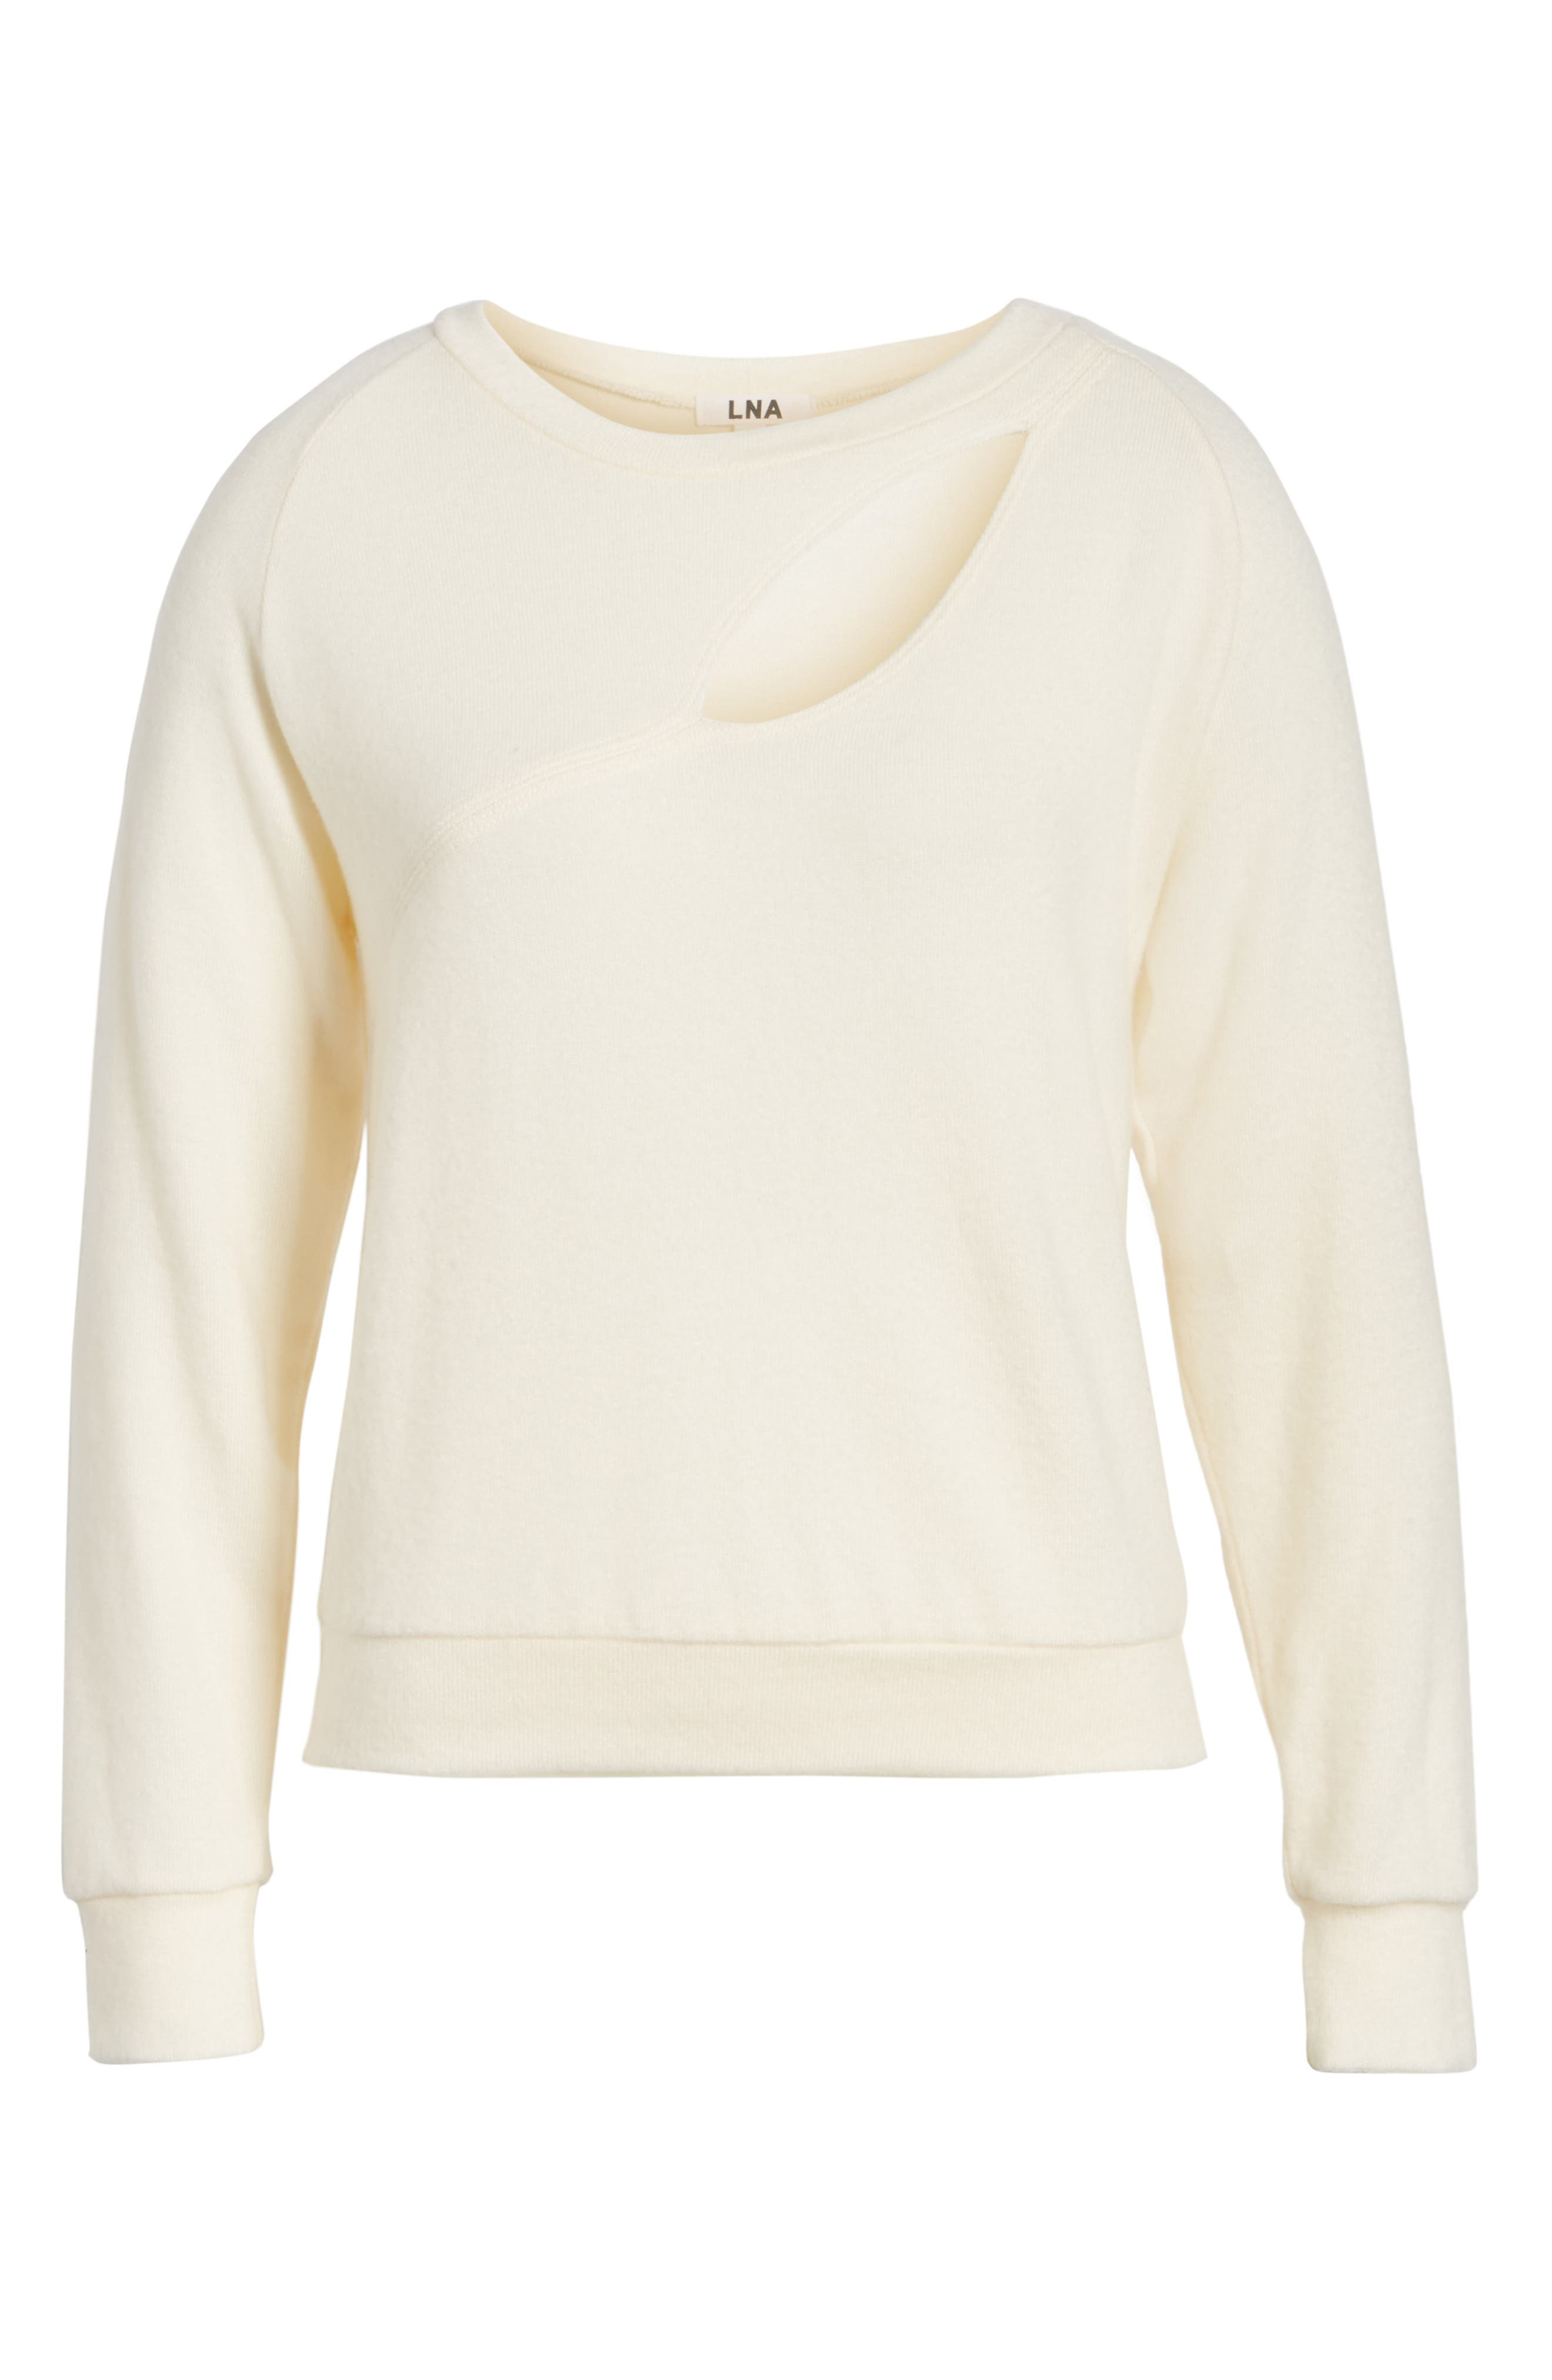 Phased Brushed Cutout Sweater,                             Alternate thumbnail 6, color,                             250